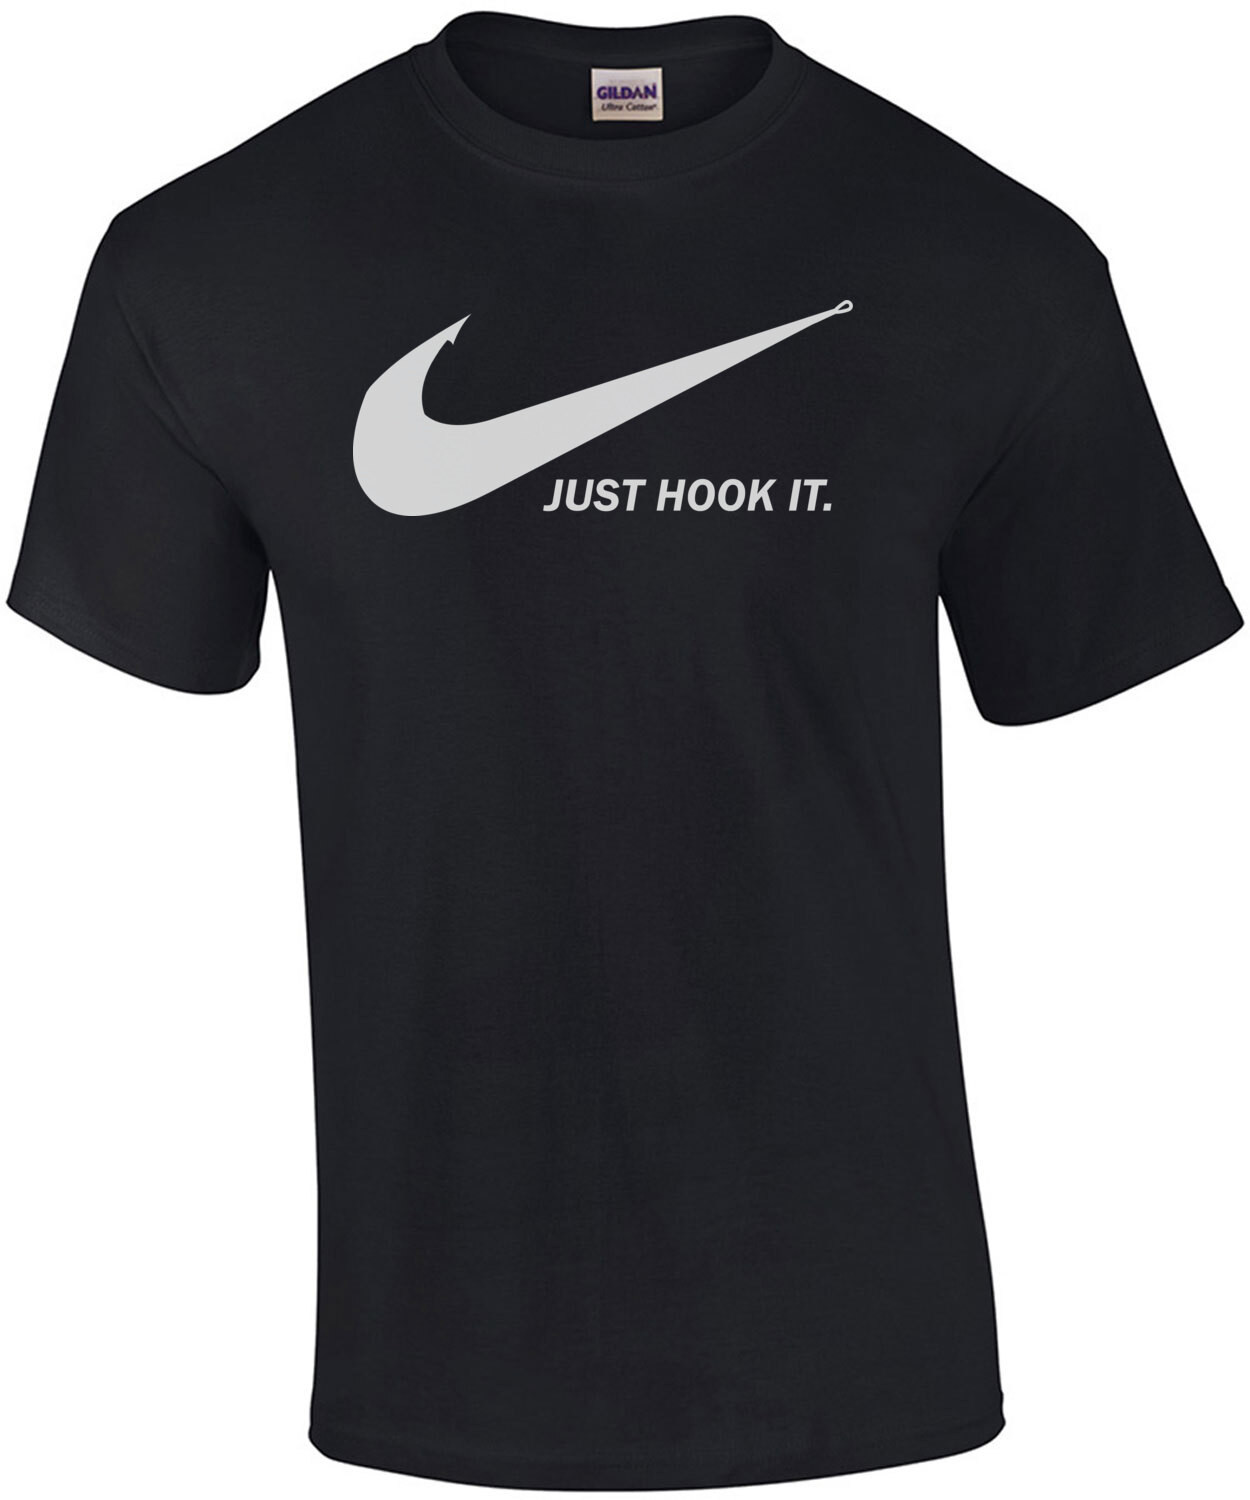 Just Hook It - Funny Fishing Shirt